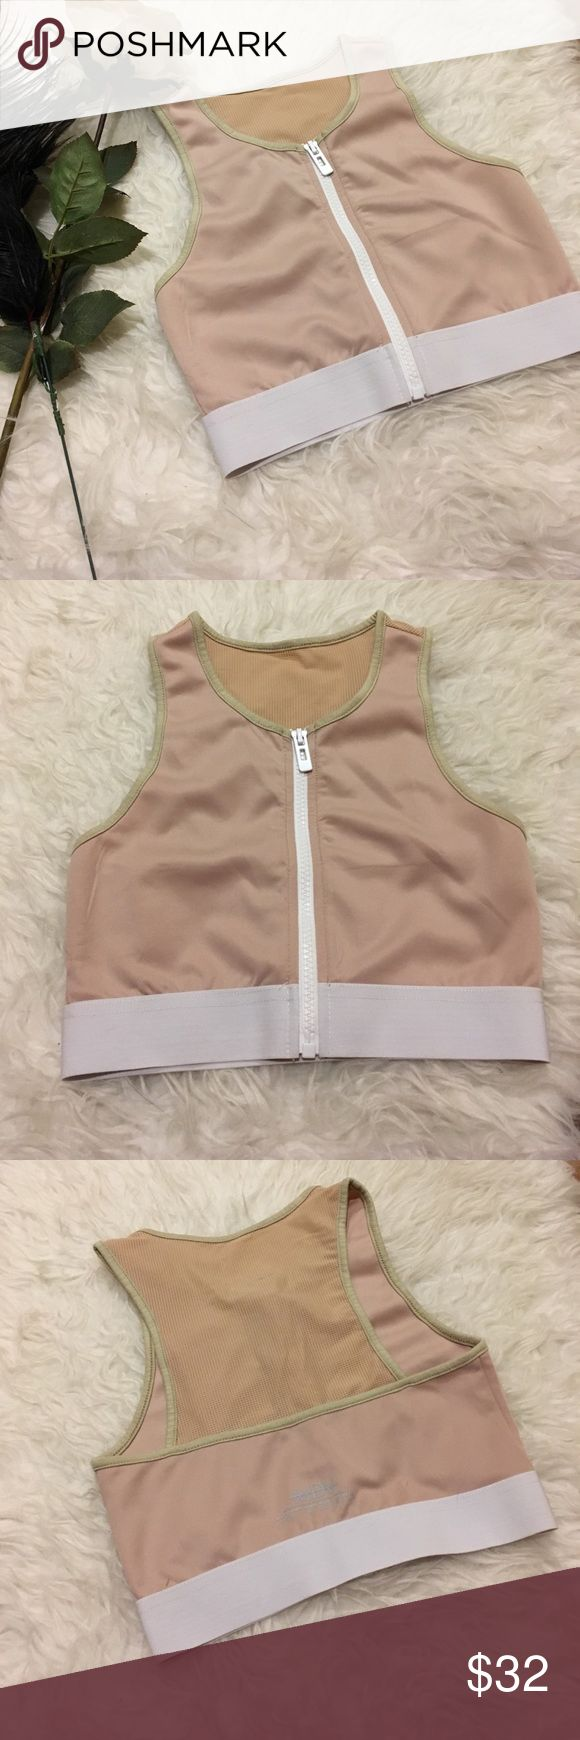 Beige zip up front workout crop top Bought and never wore :( beautiful just not my style. I have matching leggings if you're interested. No longer sold anymore ☺️ store: Maniére De Voir Tops Crop Tops